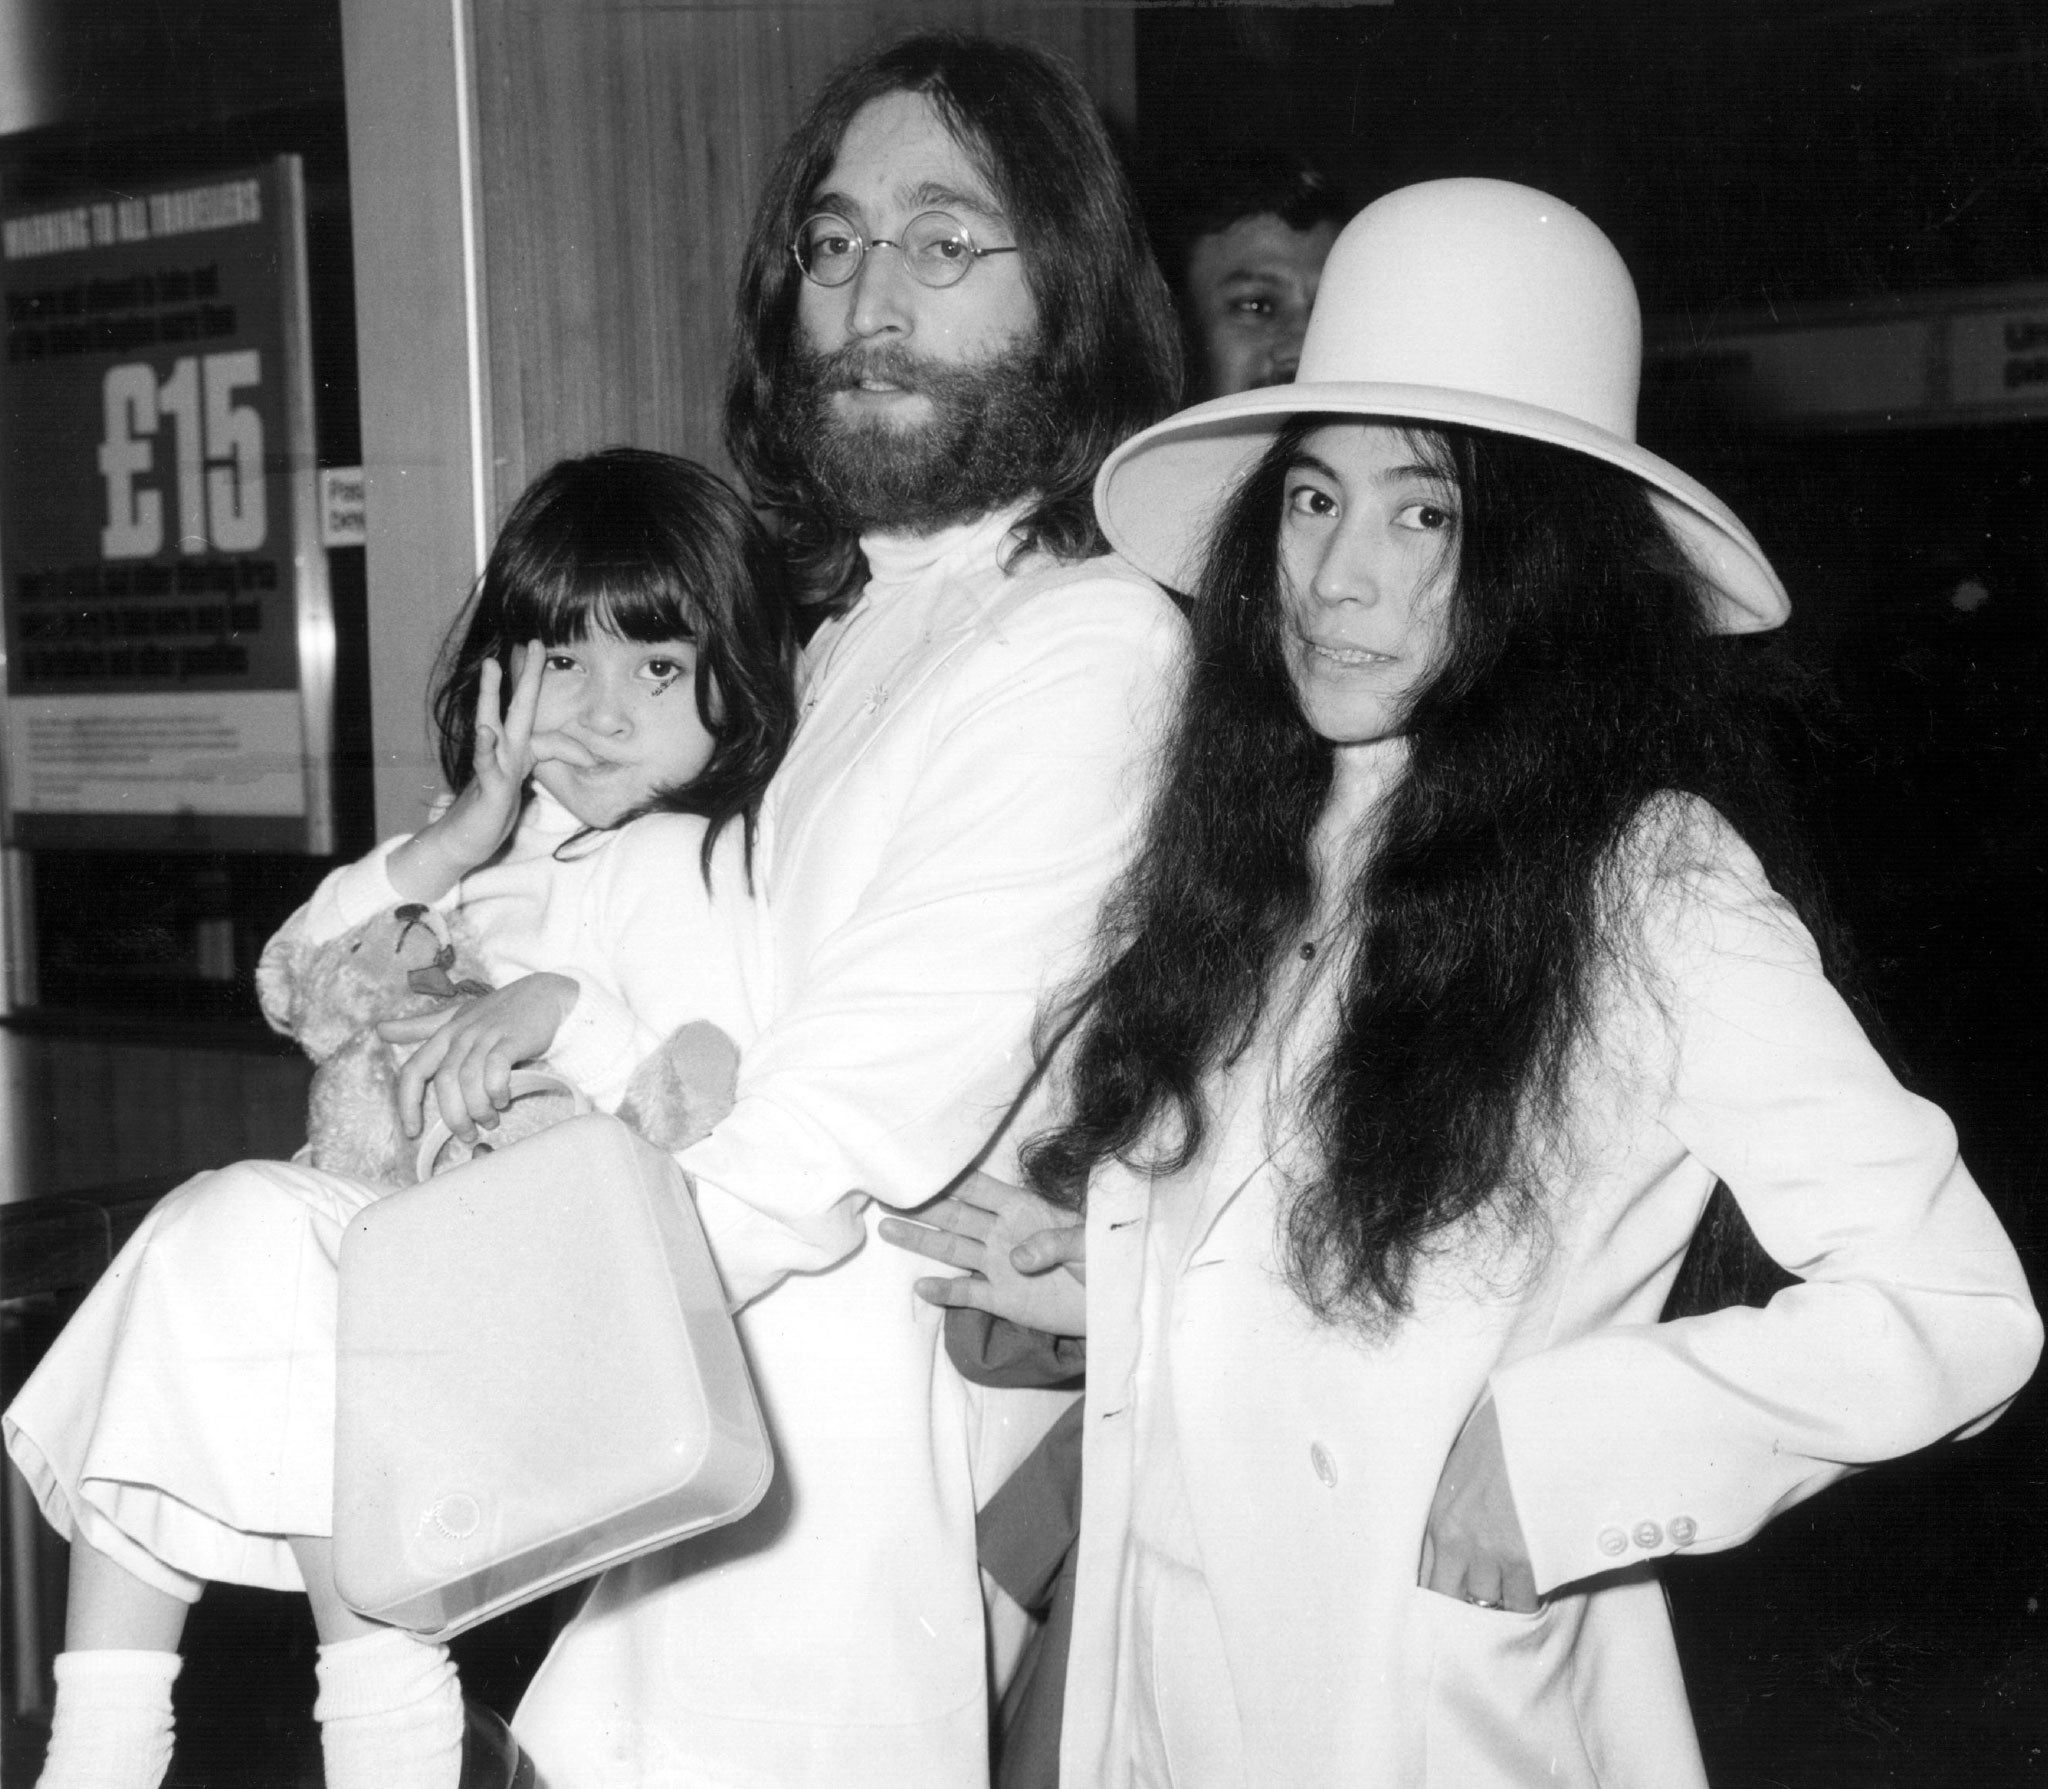 Yoko Ono With John Lennon At Londons Heathrow Airport In 1969 Them Is Kyoko Yokos Daughter From Her Previous Marriage